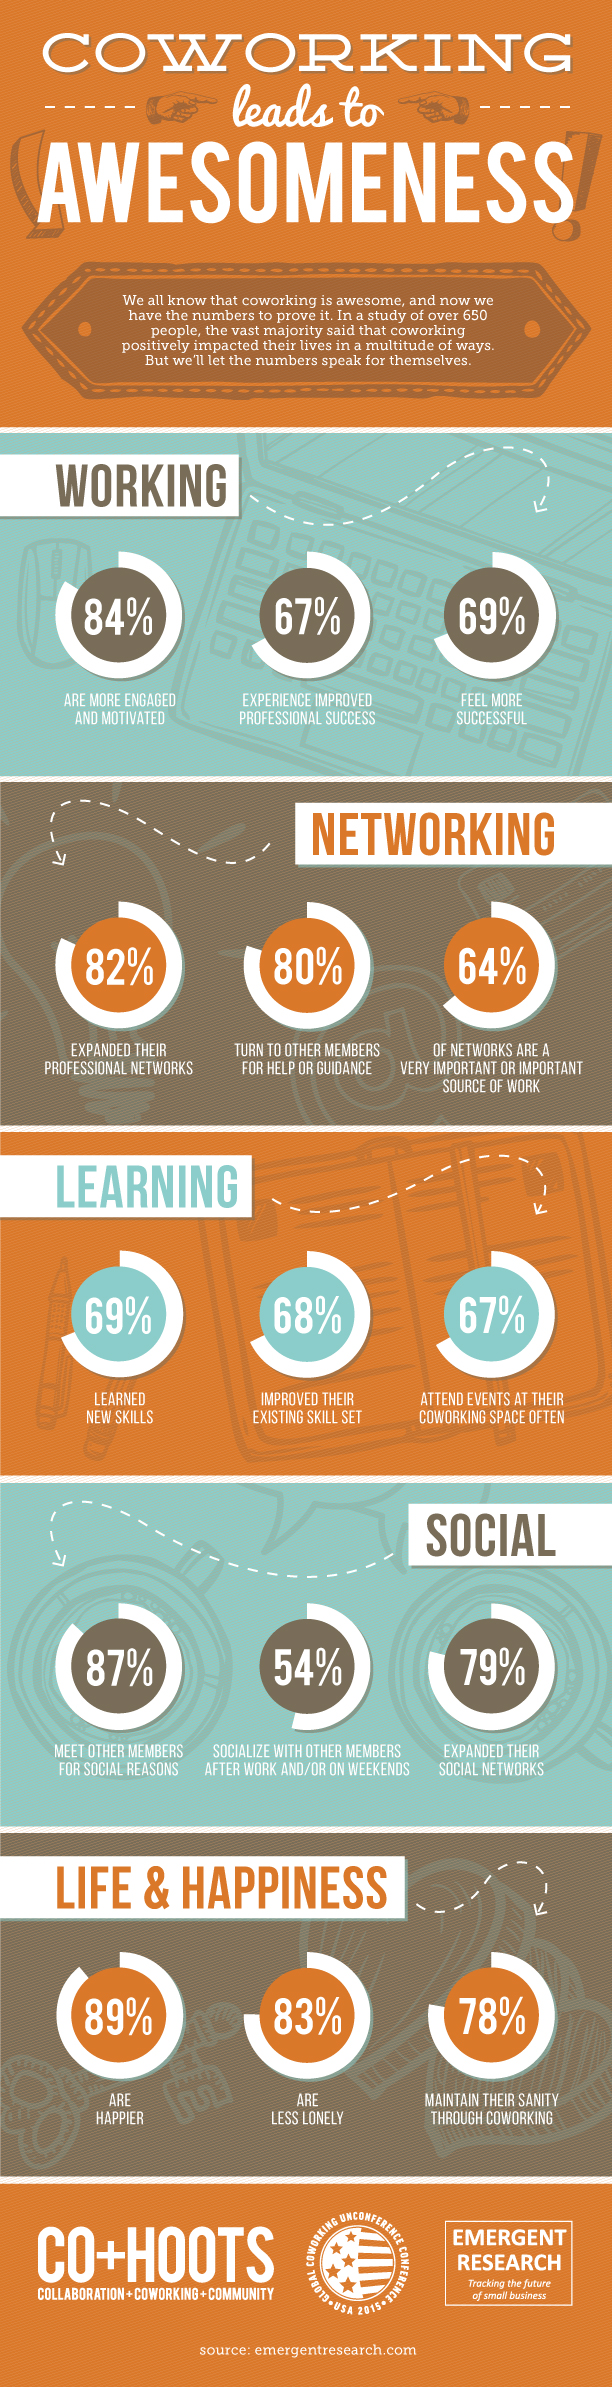 coworking_infographic_web-1